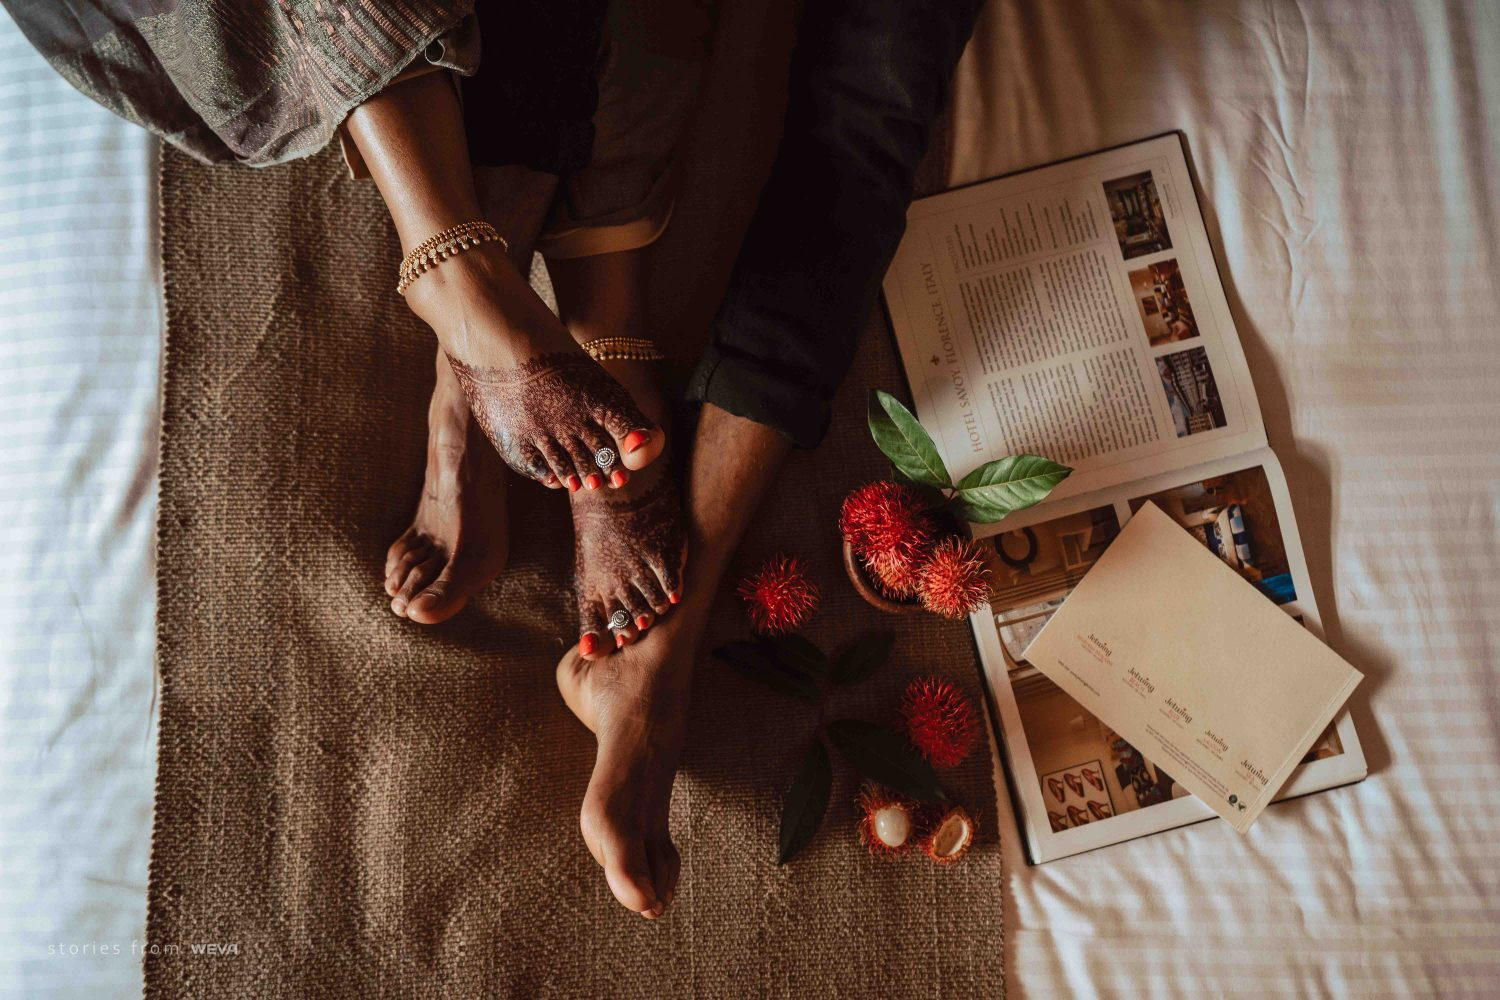 A day does not go by without thinking of you, I would give you my time and care, Your heart gives me strength and Your smile gives me warmth... You are my dream come true!!!.